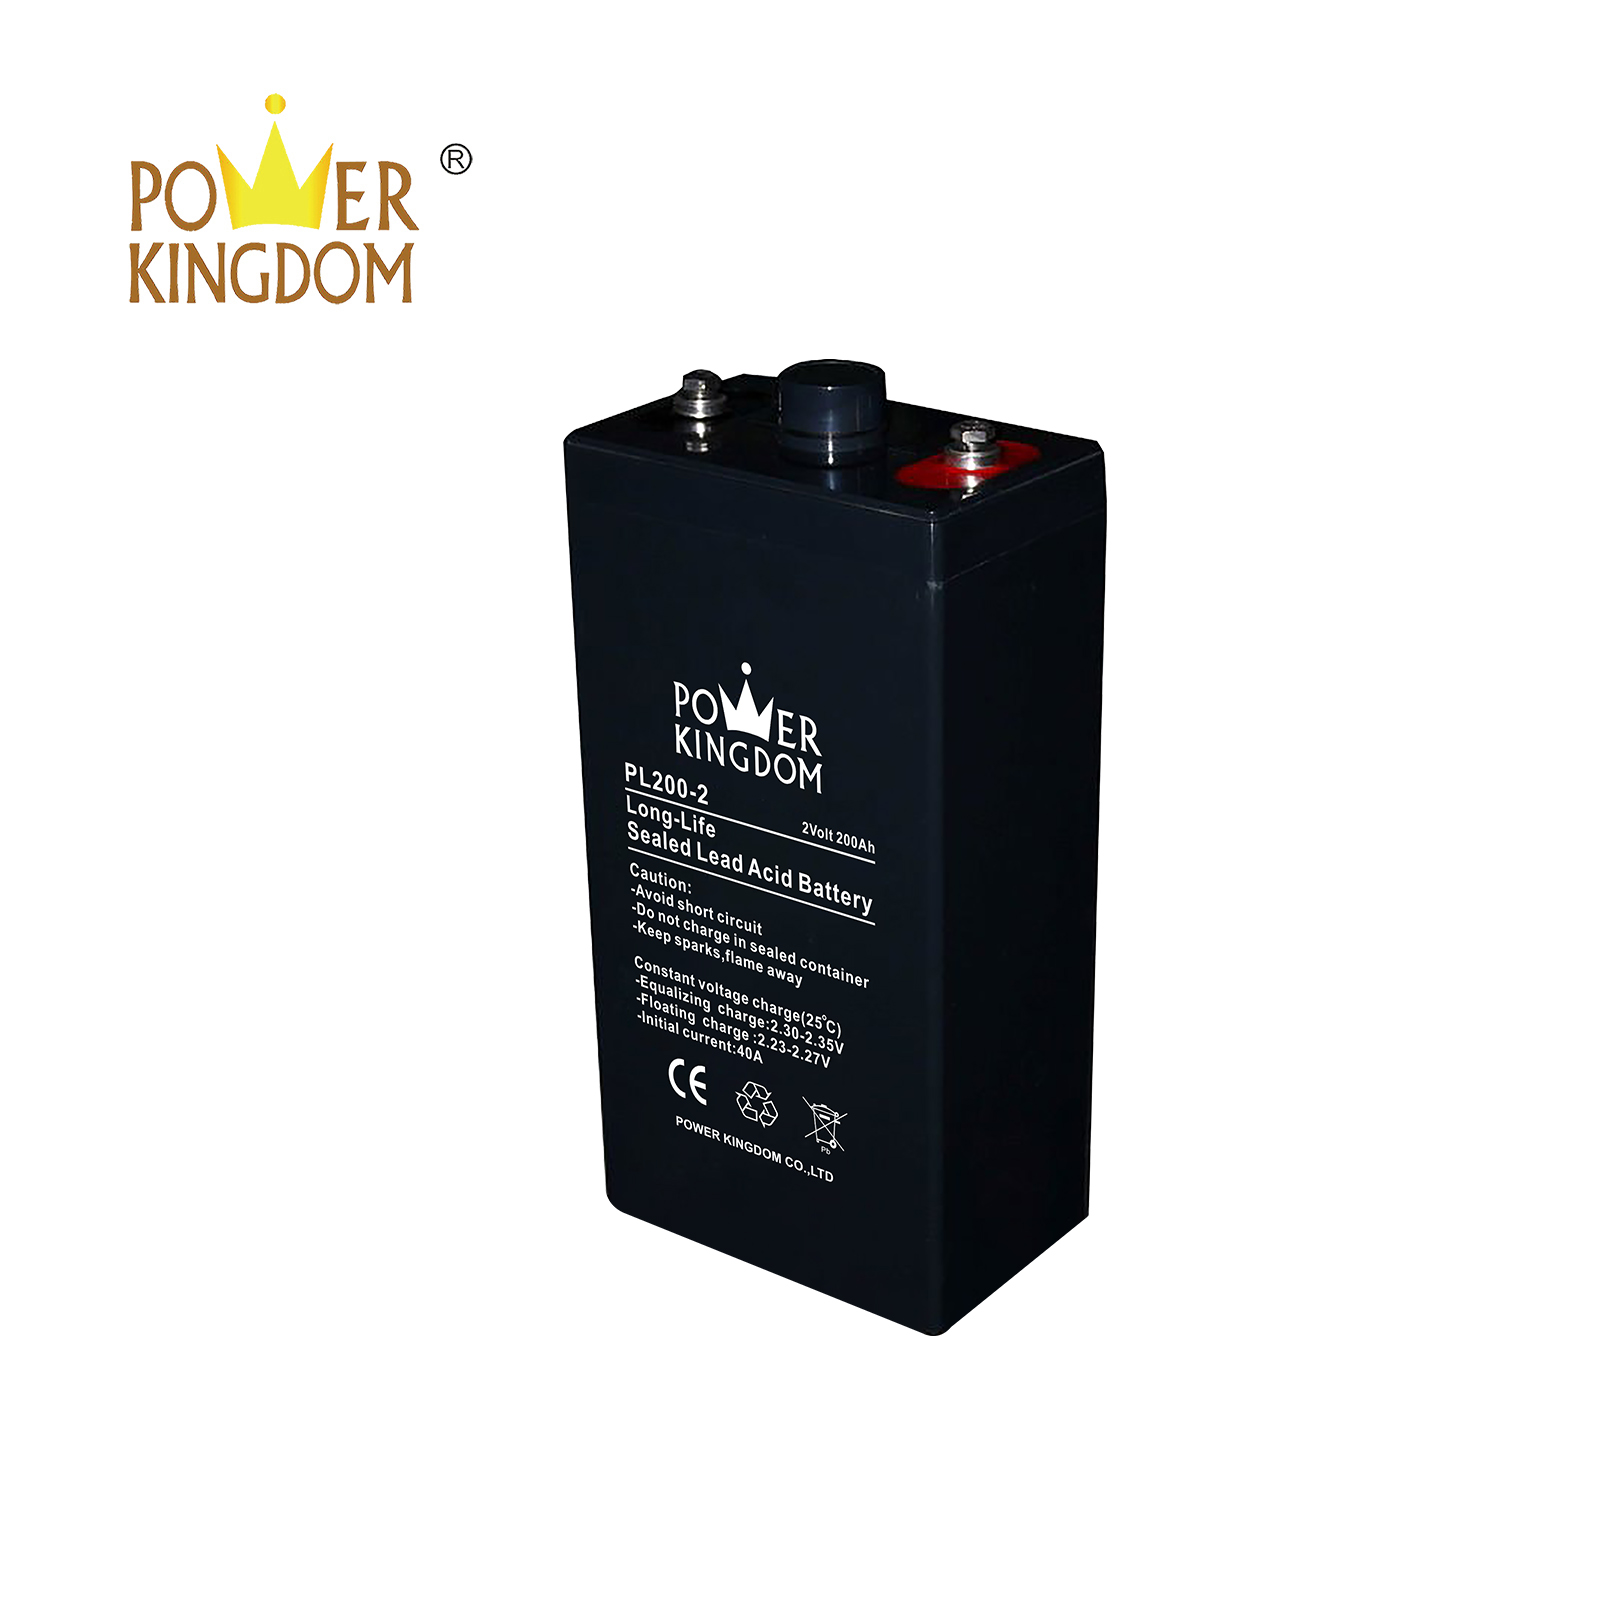 Power Kingdom gel cell charger china wholesale website fire system-2